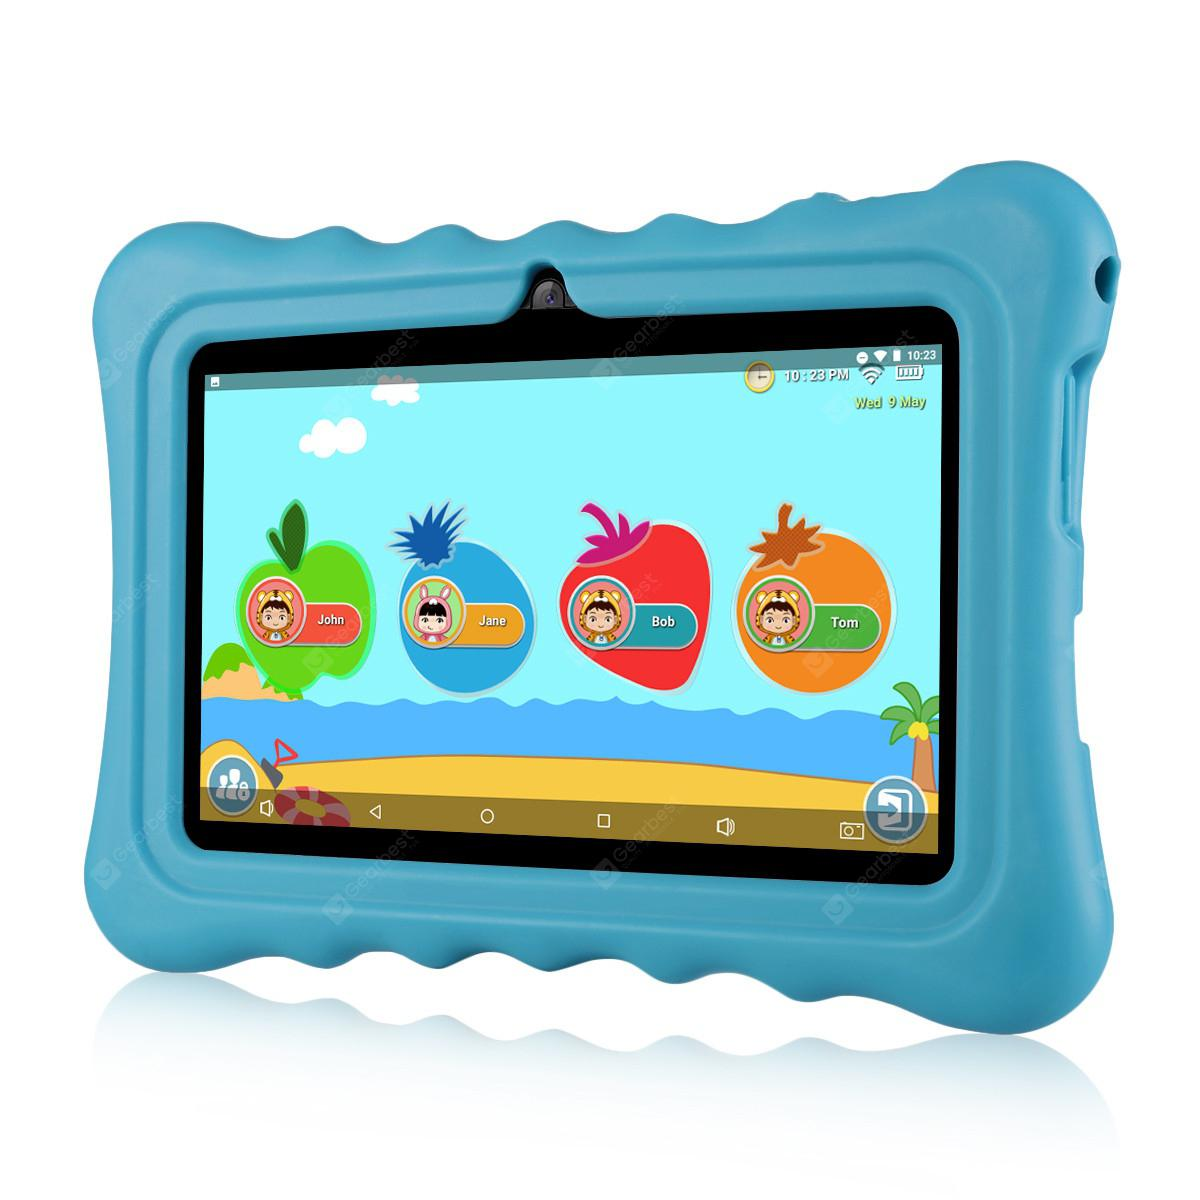 "Ainol Q88 Kids Android 7.1 OS Tablet 7"" Display 1G RAM 8 GB ROM Light Weight Portable Kid-Proof Shock-Proof Silicone Case Kickstand Available With iWawa For Kids Education Entertainment---Blue"